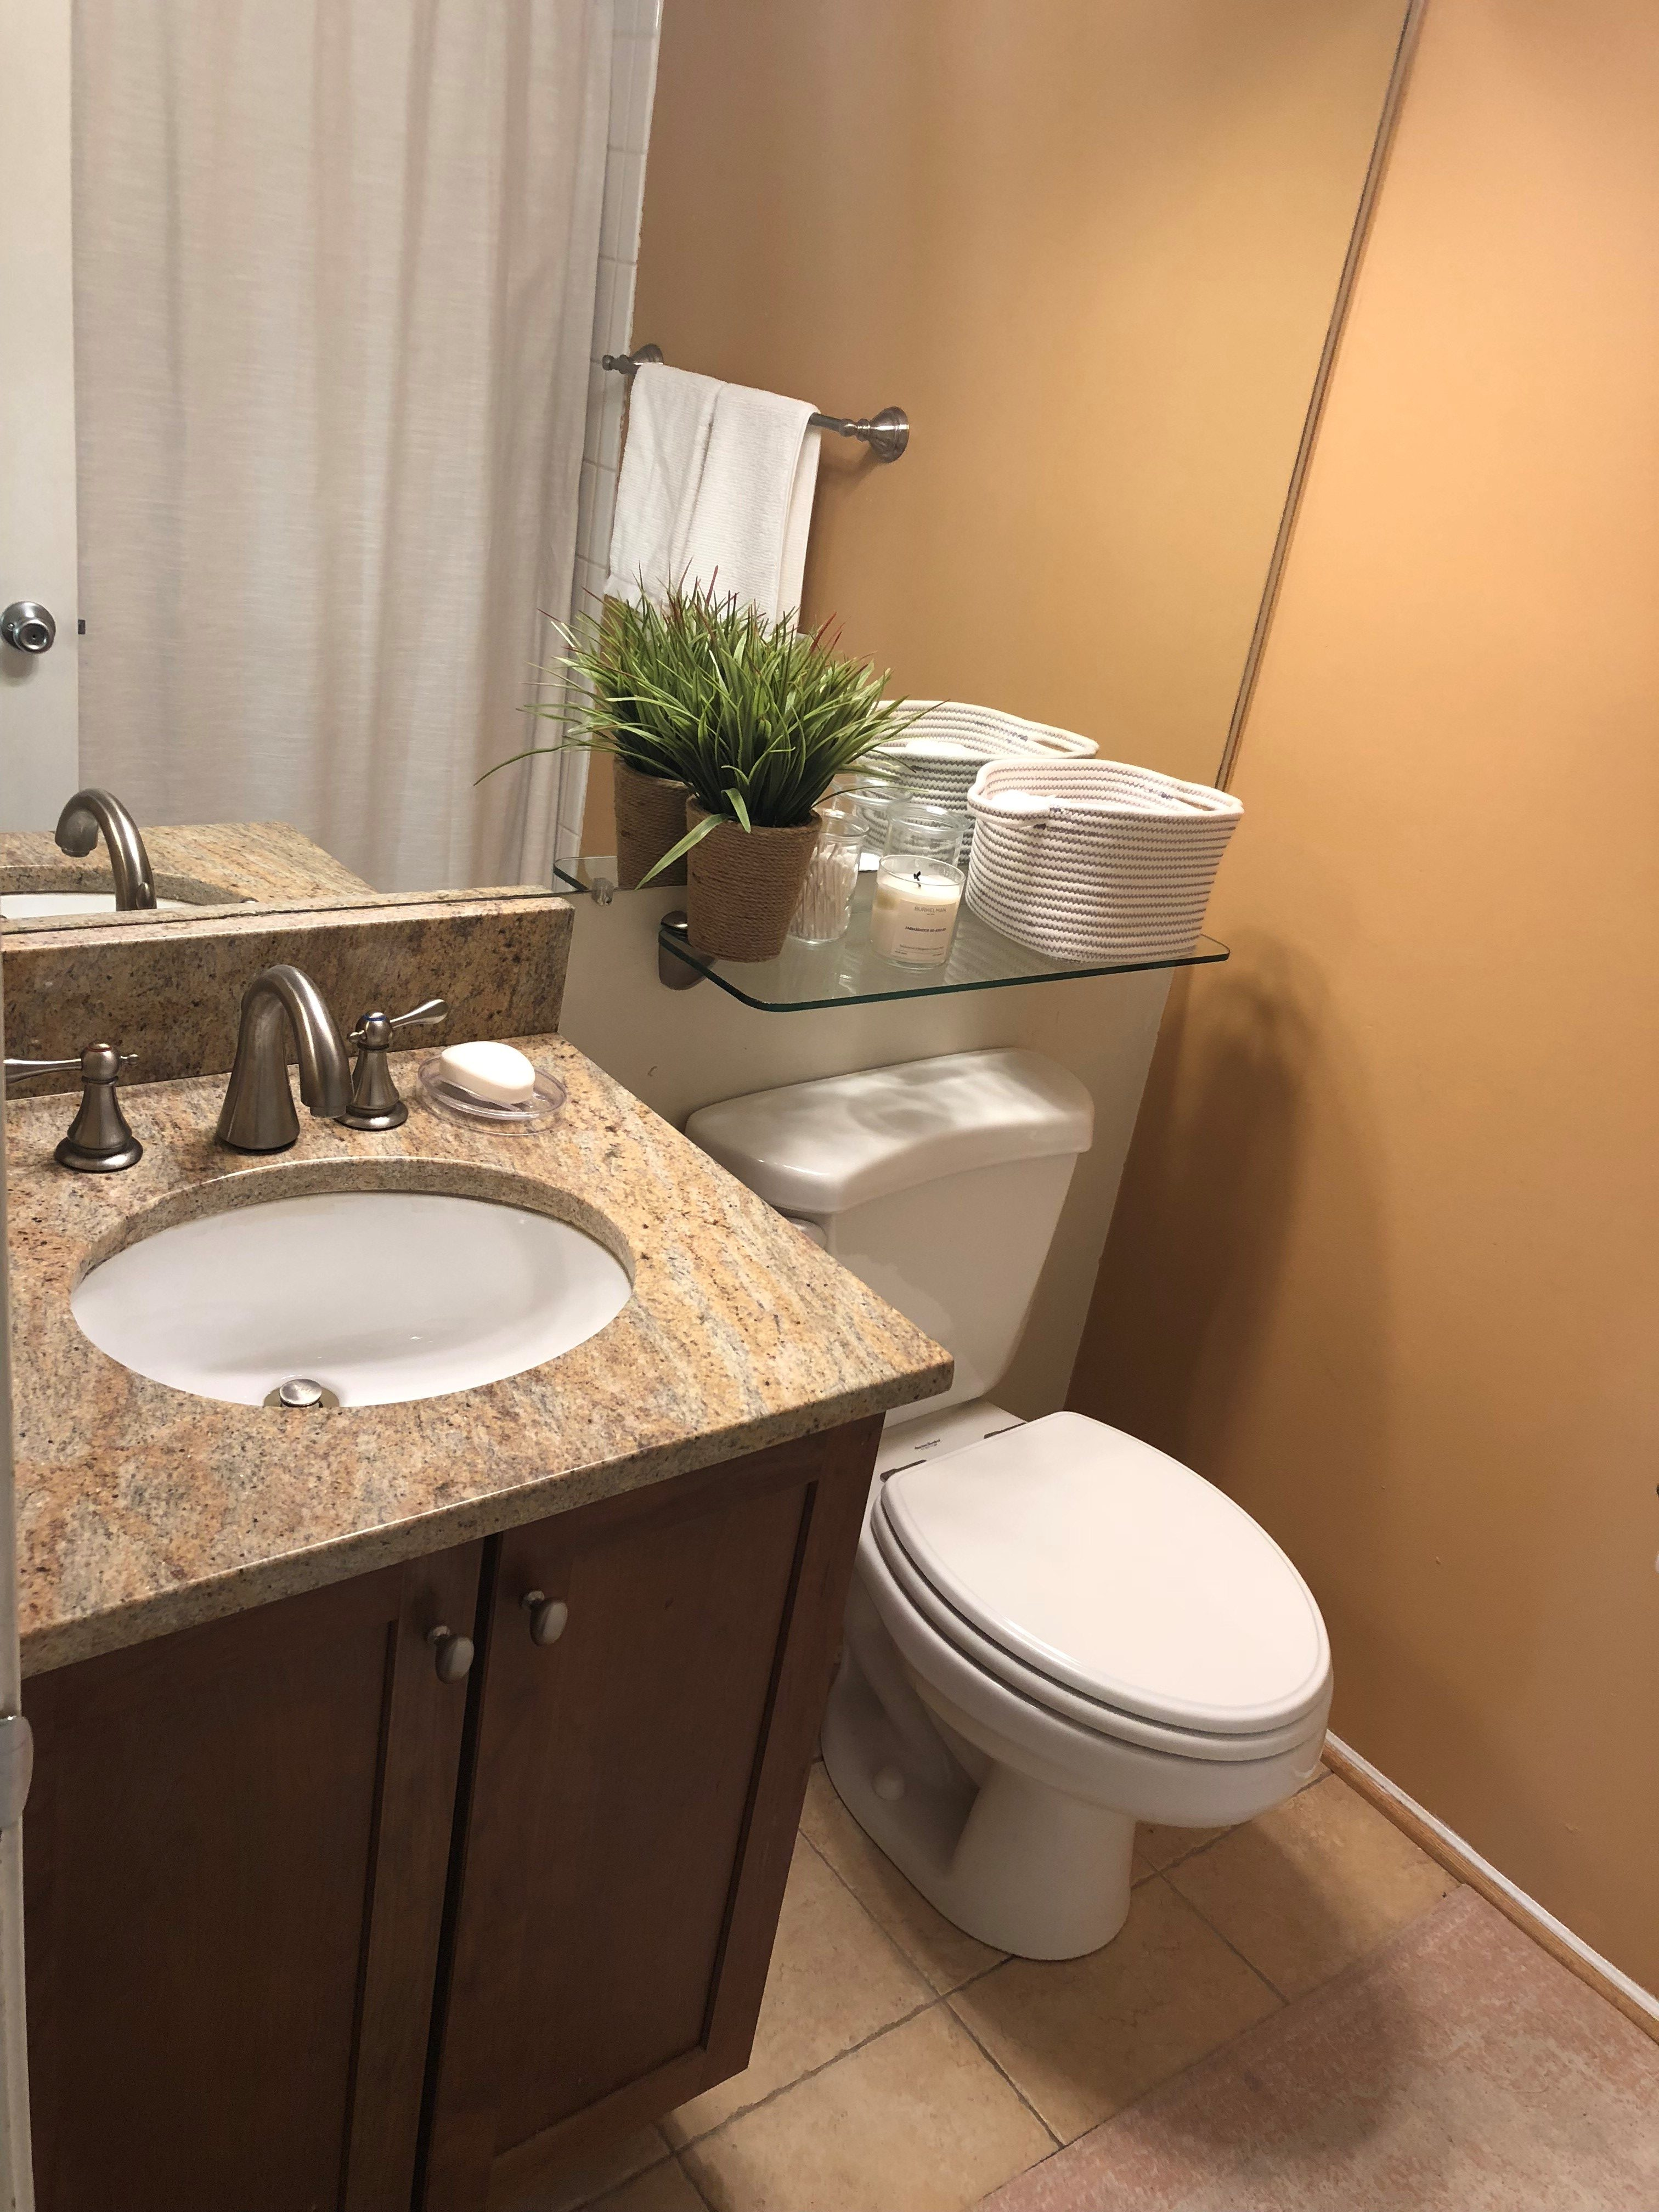 Ethiopian room for rent in MD